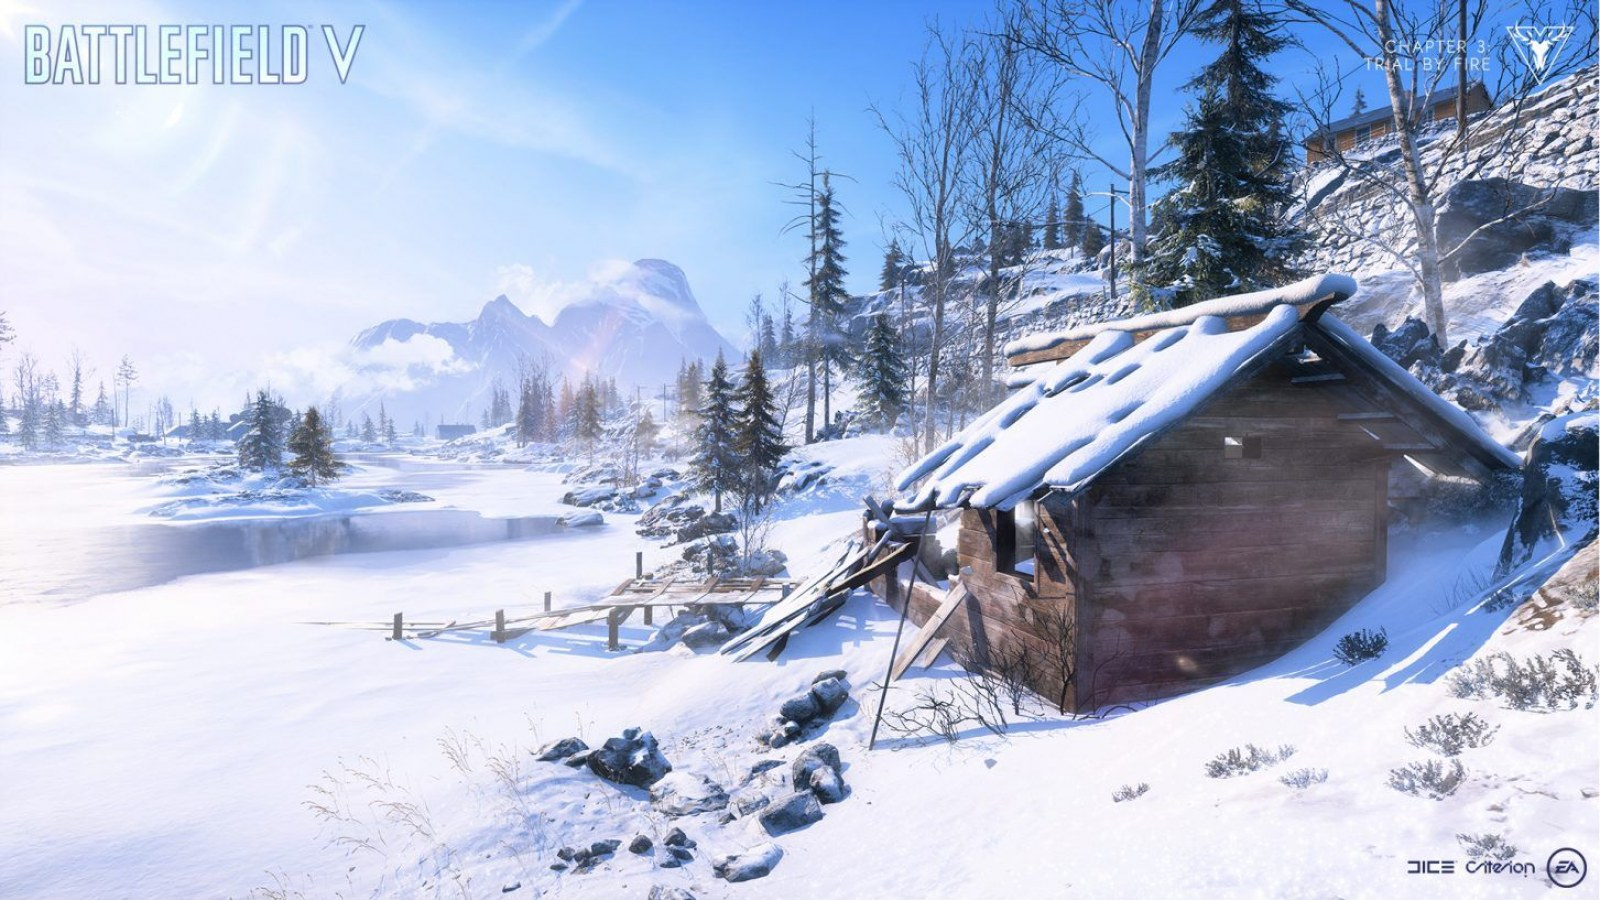 Battlefield 5' Update 1 14 Fixes Firestorm, Adds